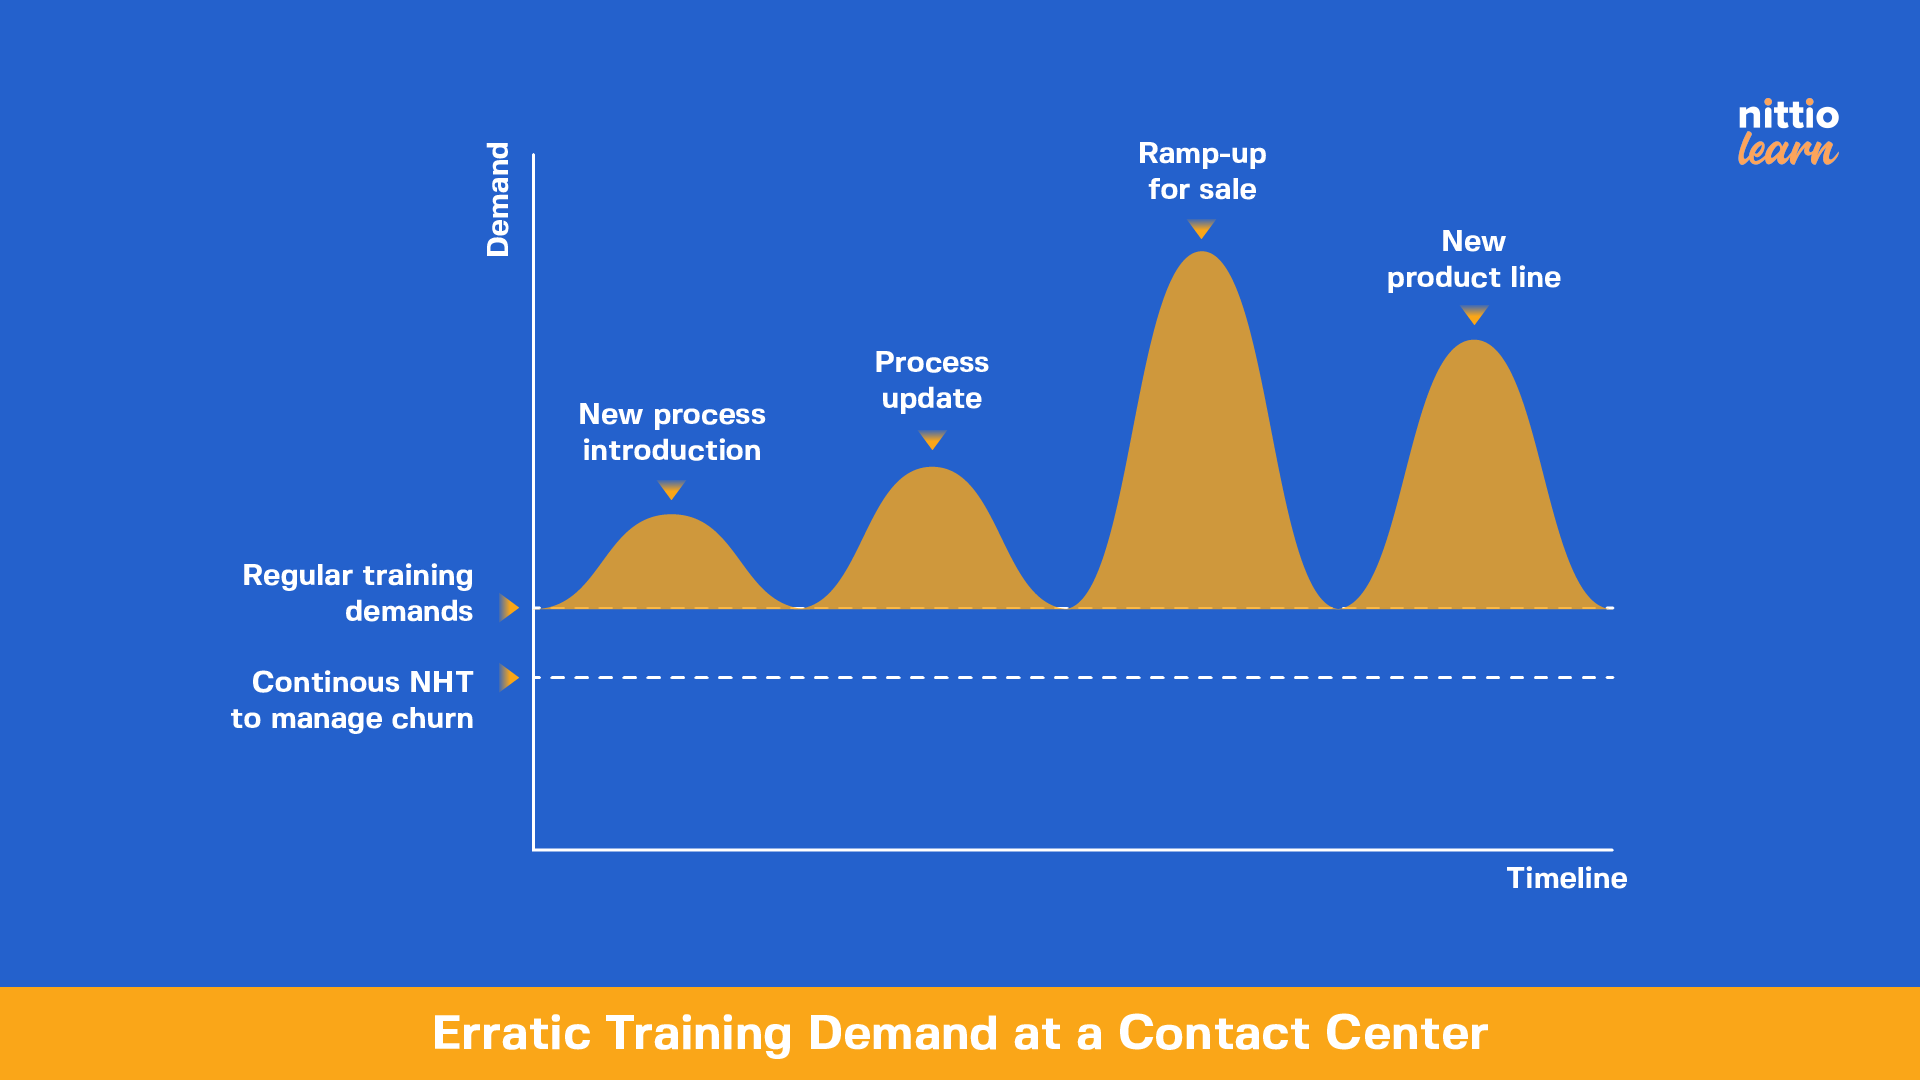 Nittio Learn - At contact centers, training demand is always dynamic